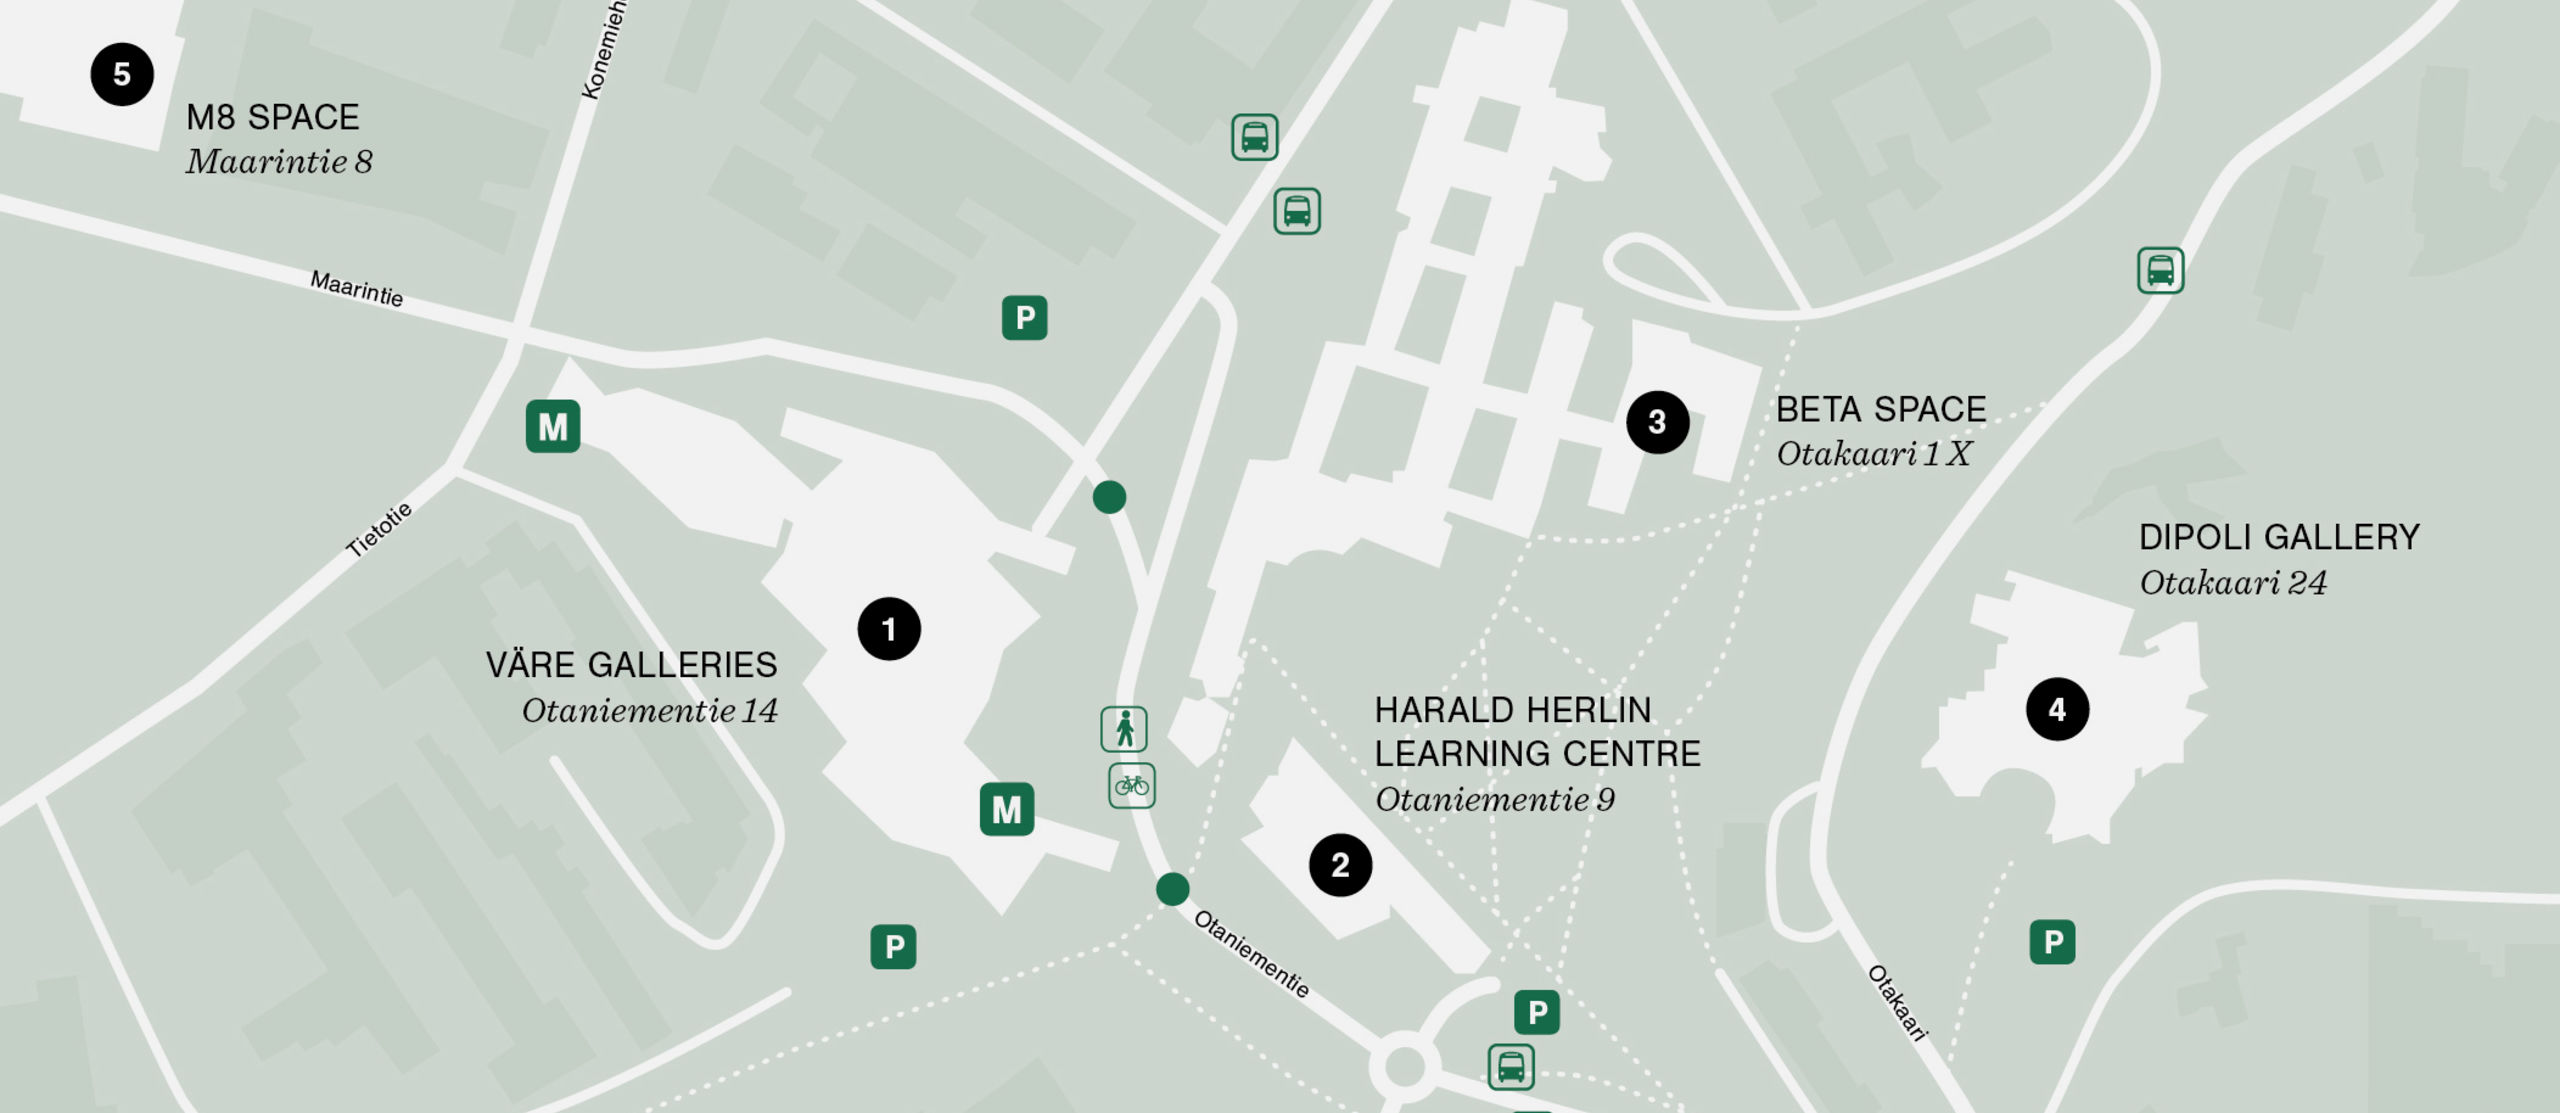 Map of Aalto Exhibition Spaces